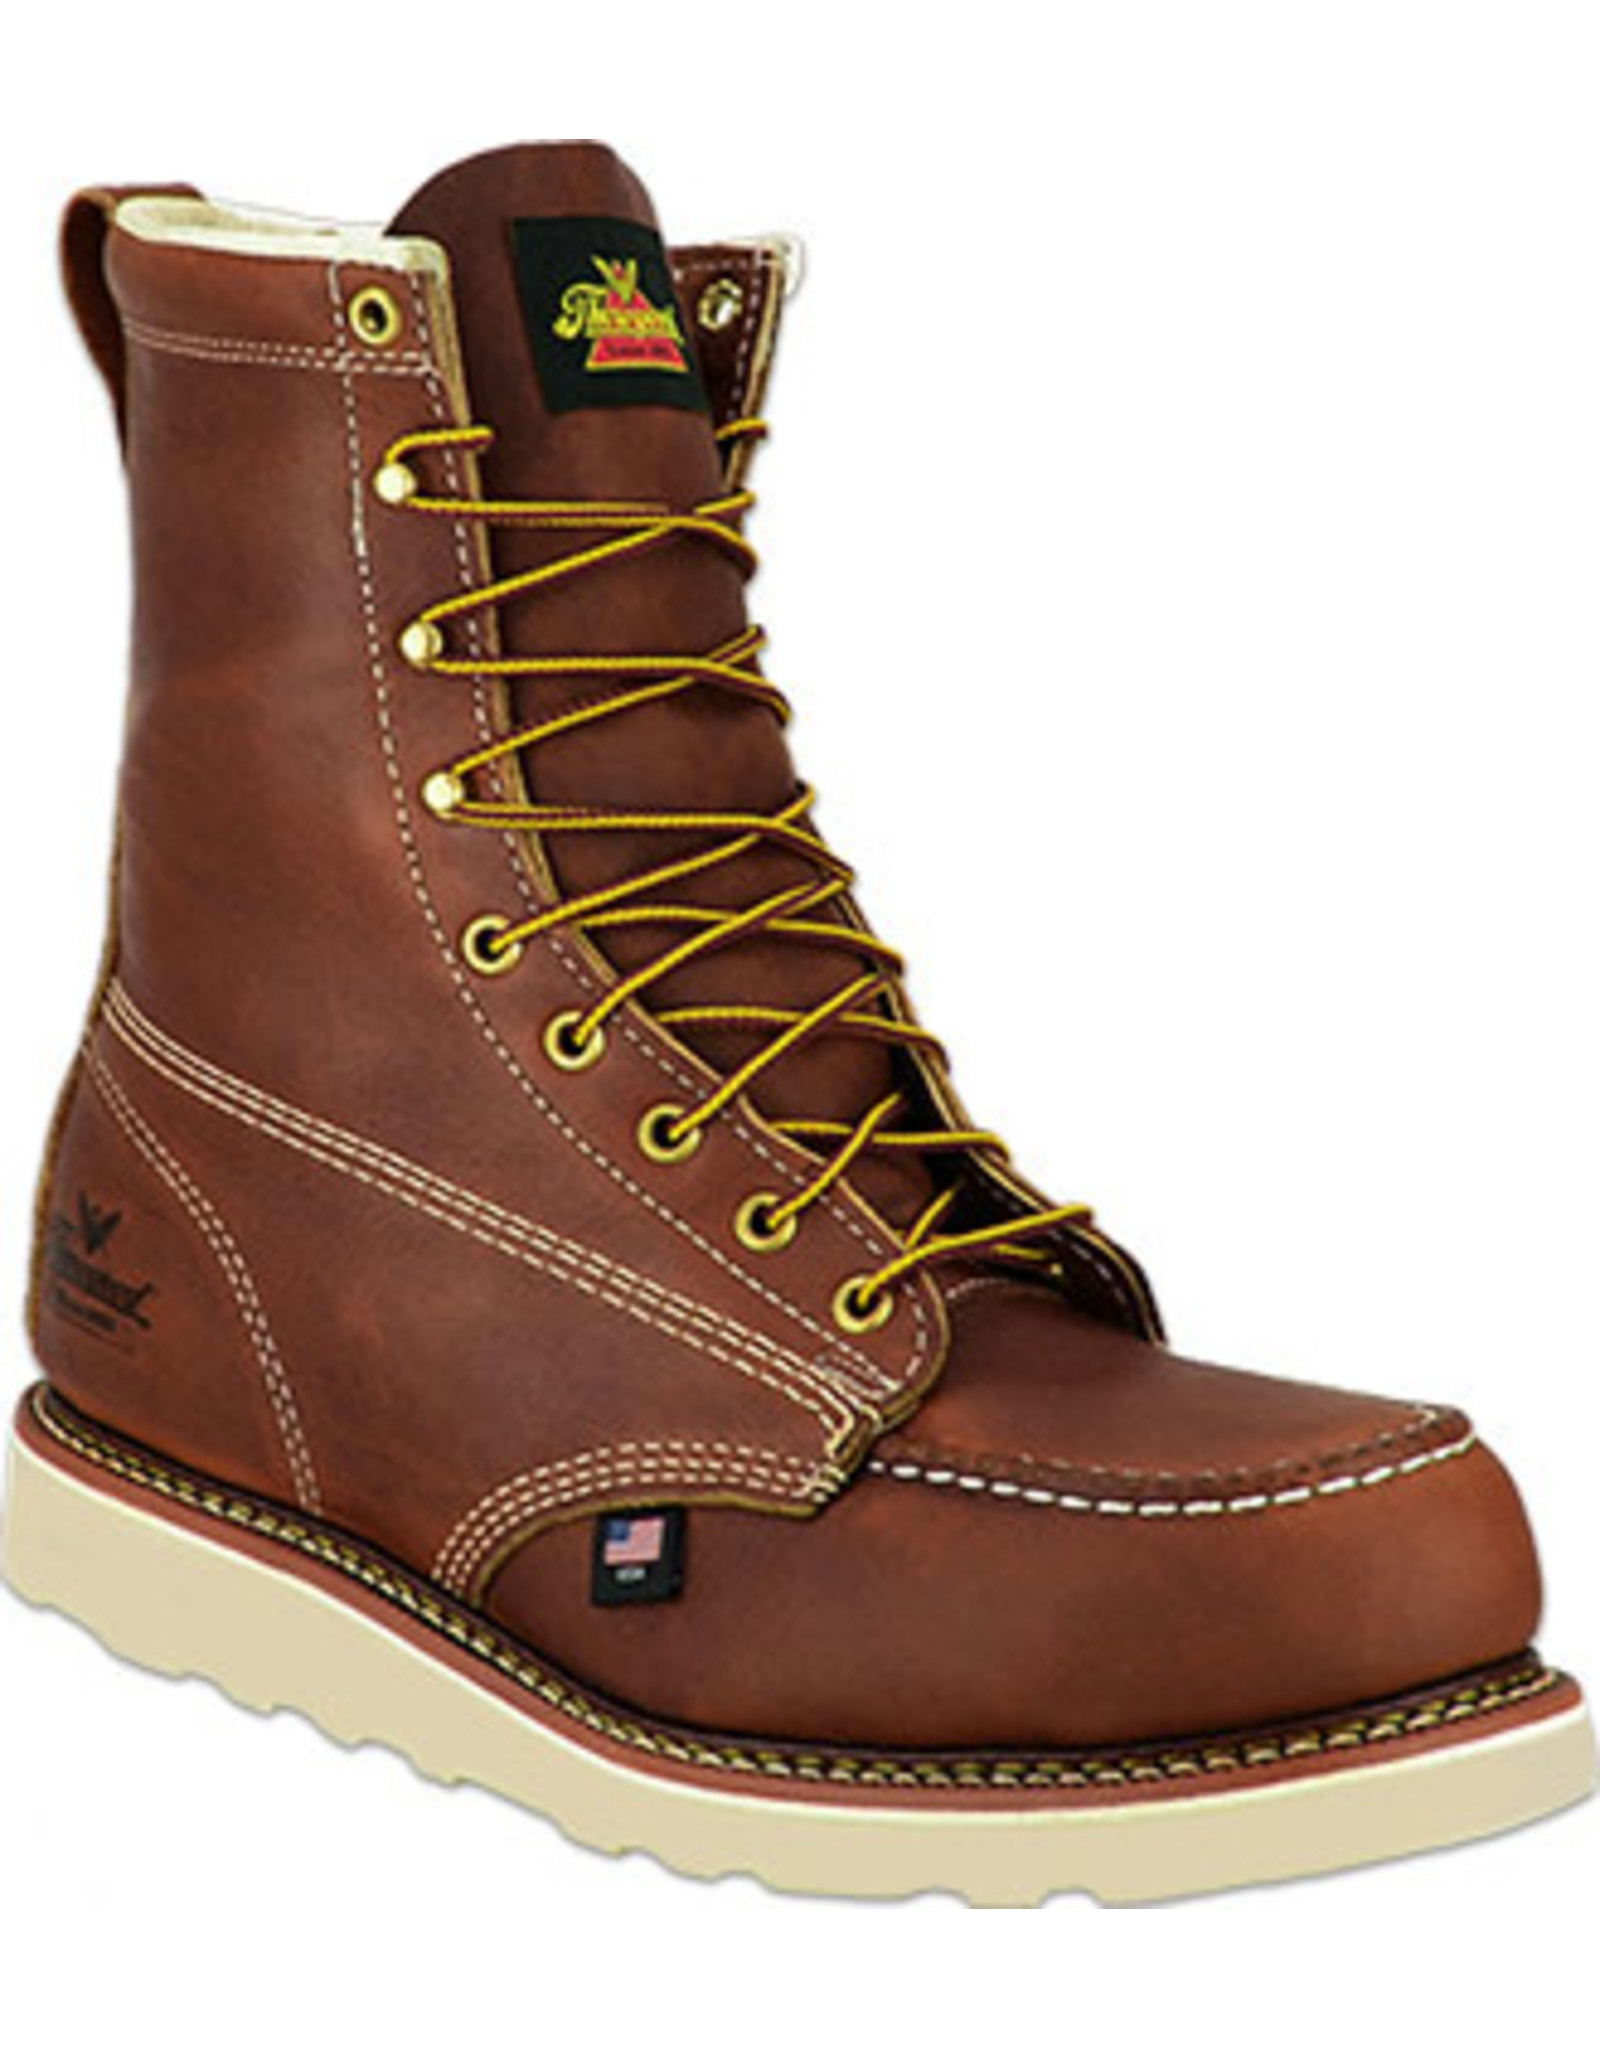 Boots-Men Thorogood 804-4208 8in Moc Safety Toe